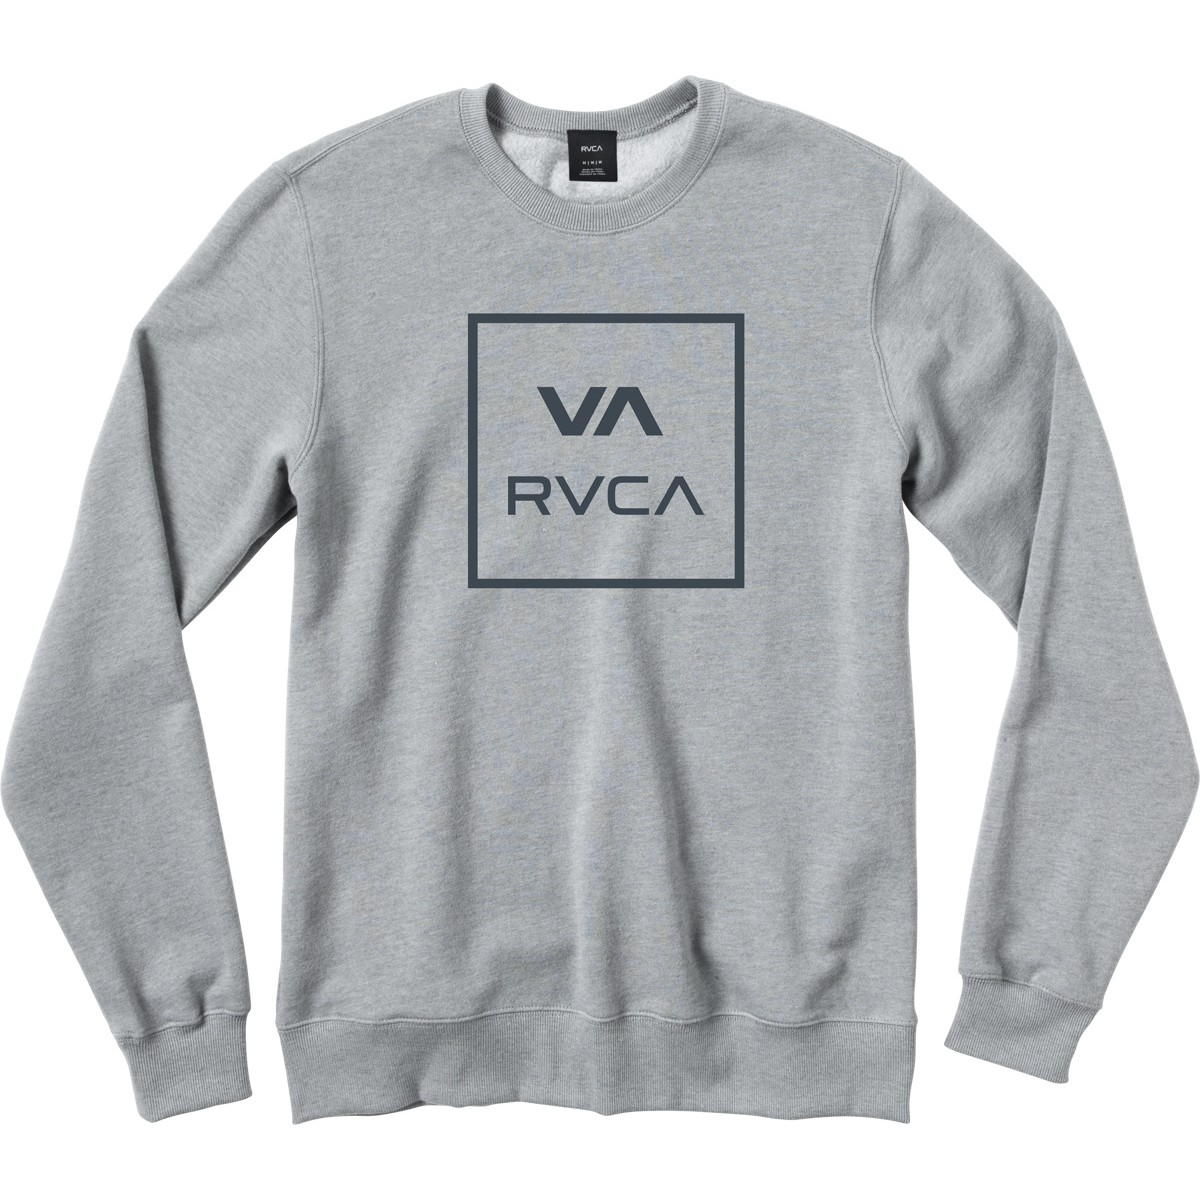 RVCA VA All the Way Sweatshirt-Grey